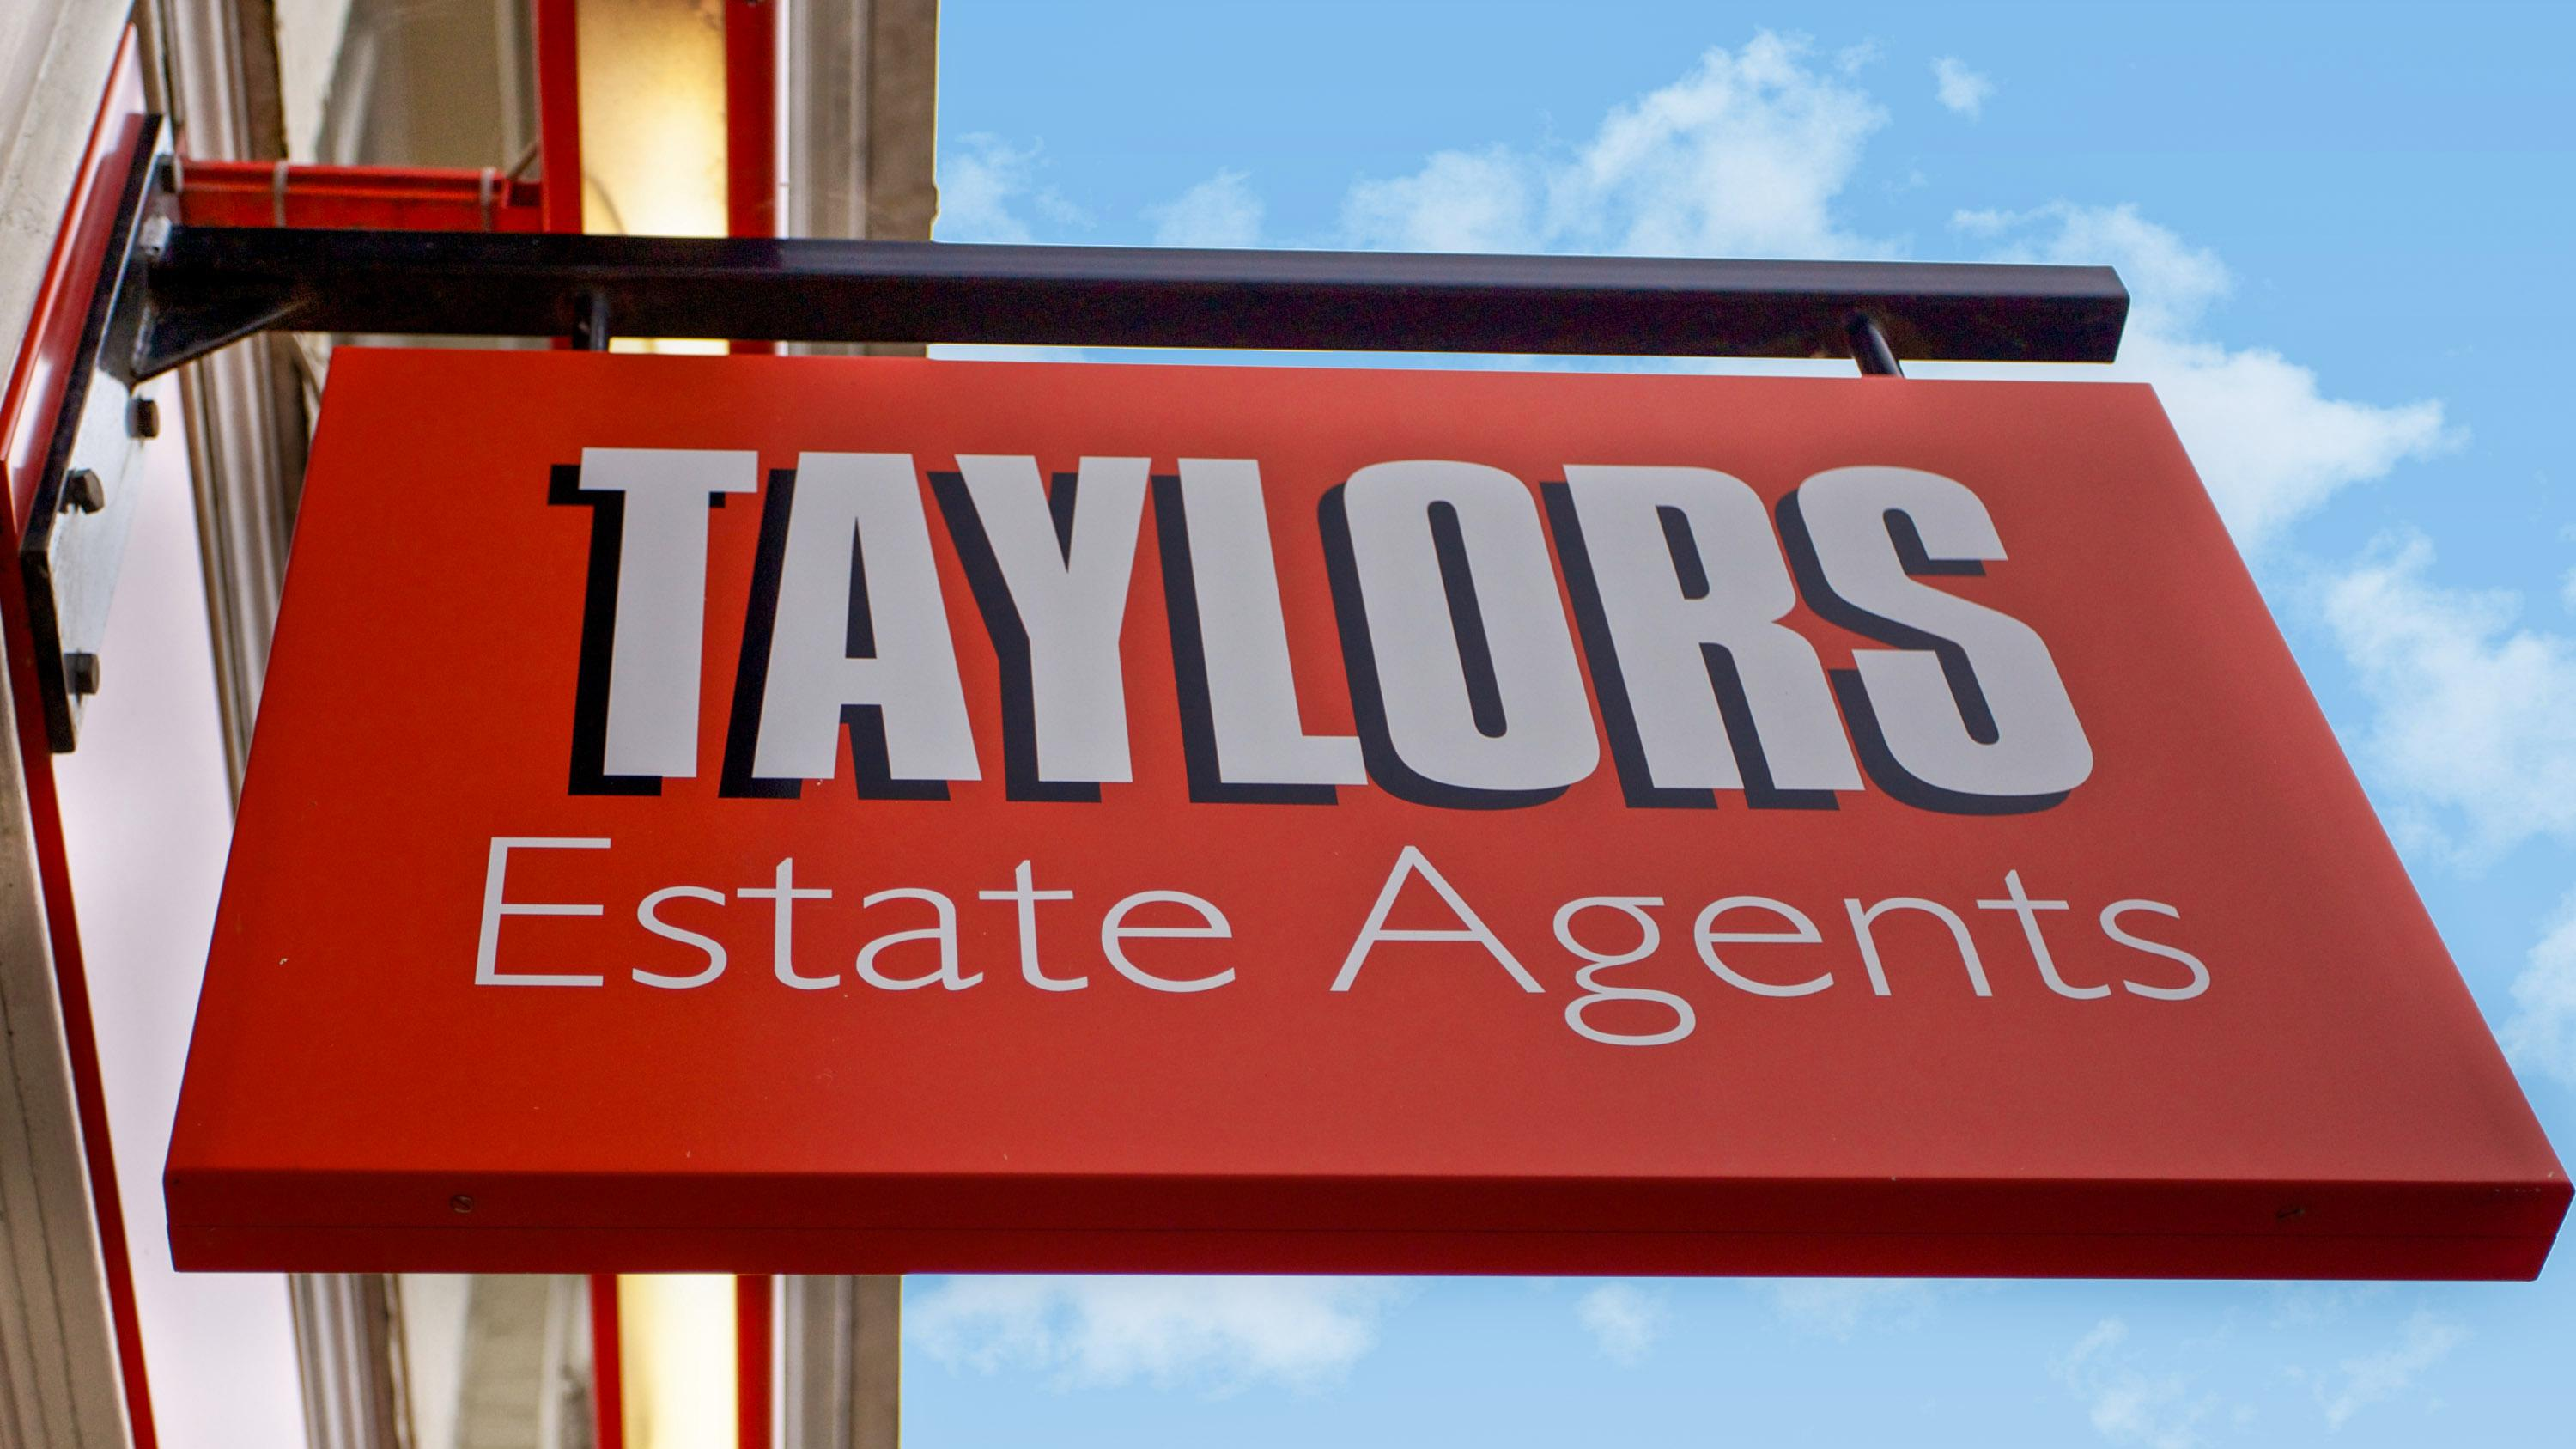 Taylors Estate and Letting Agents Leighton Buzzard